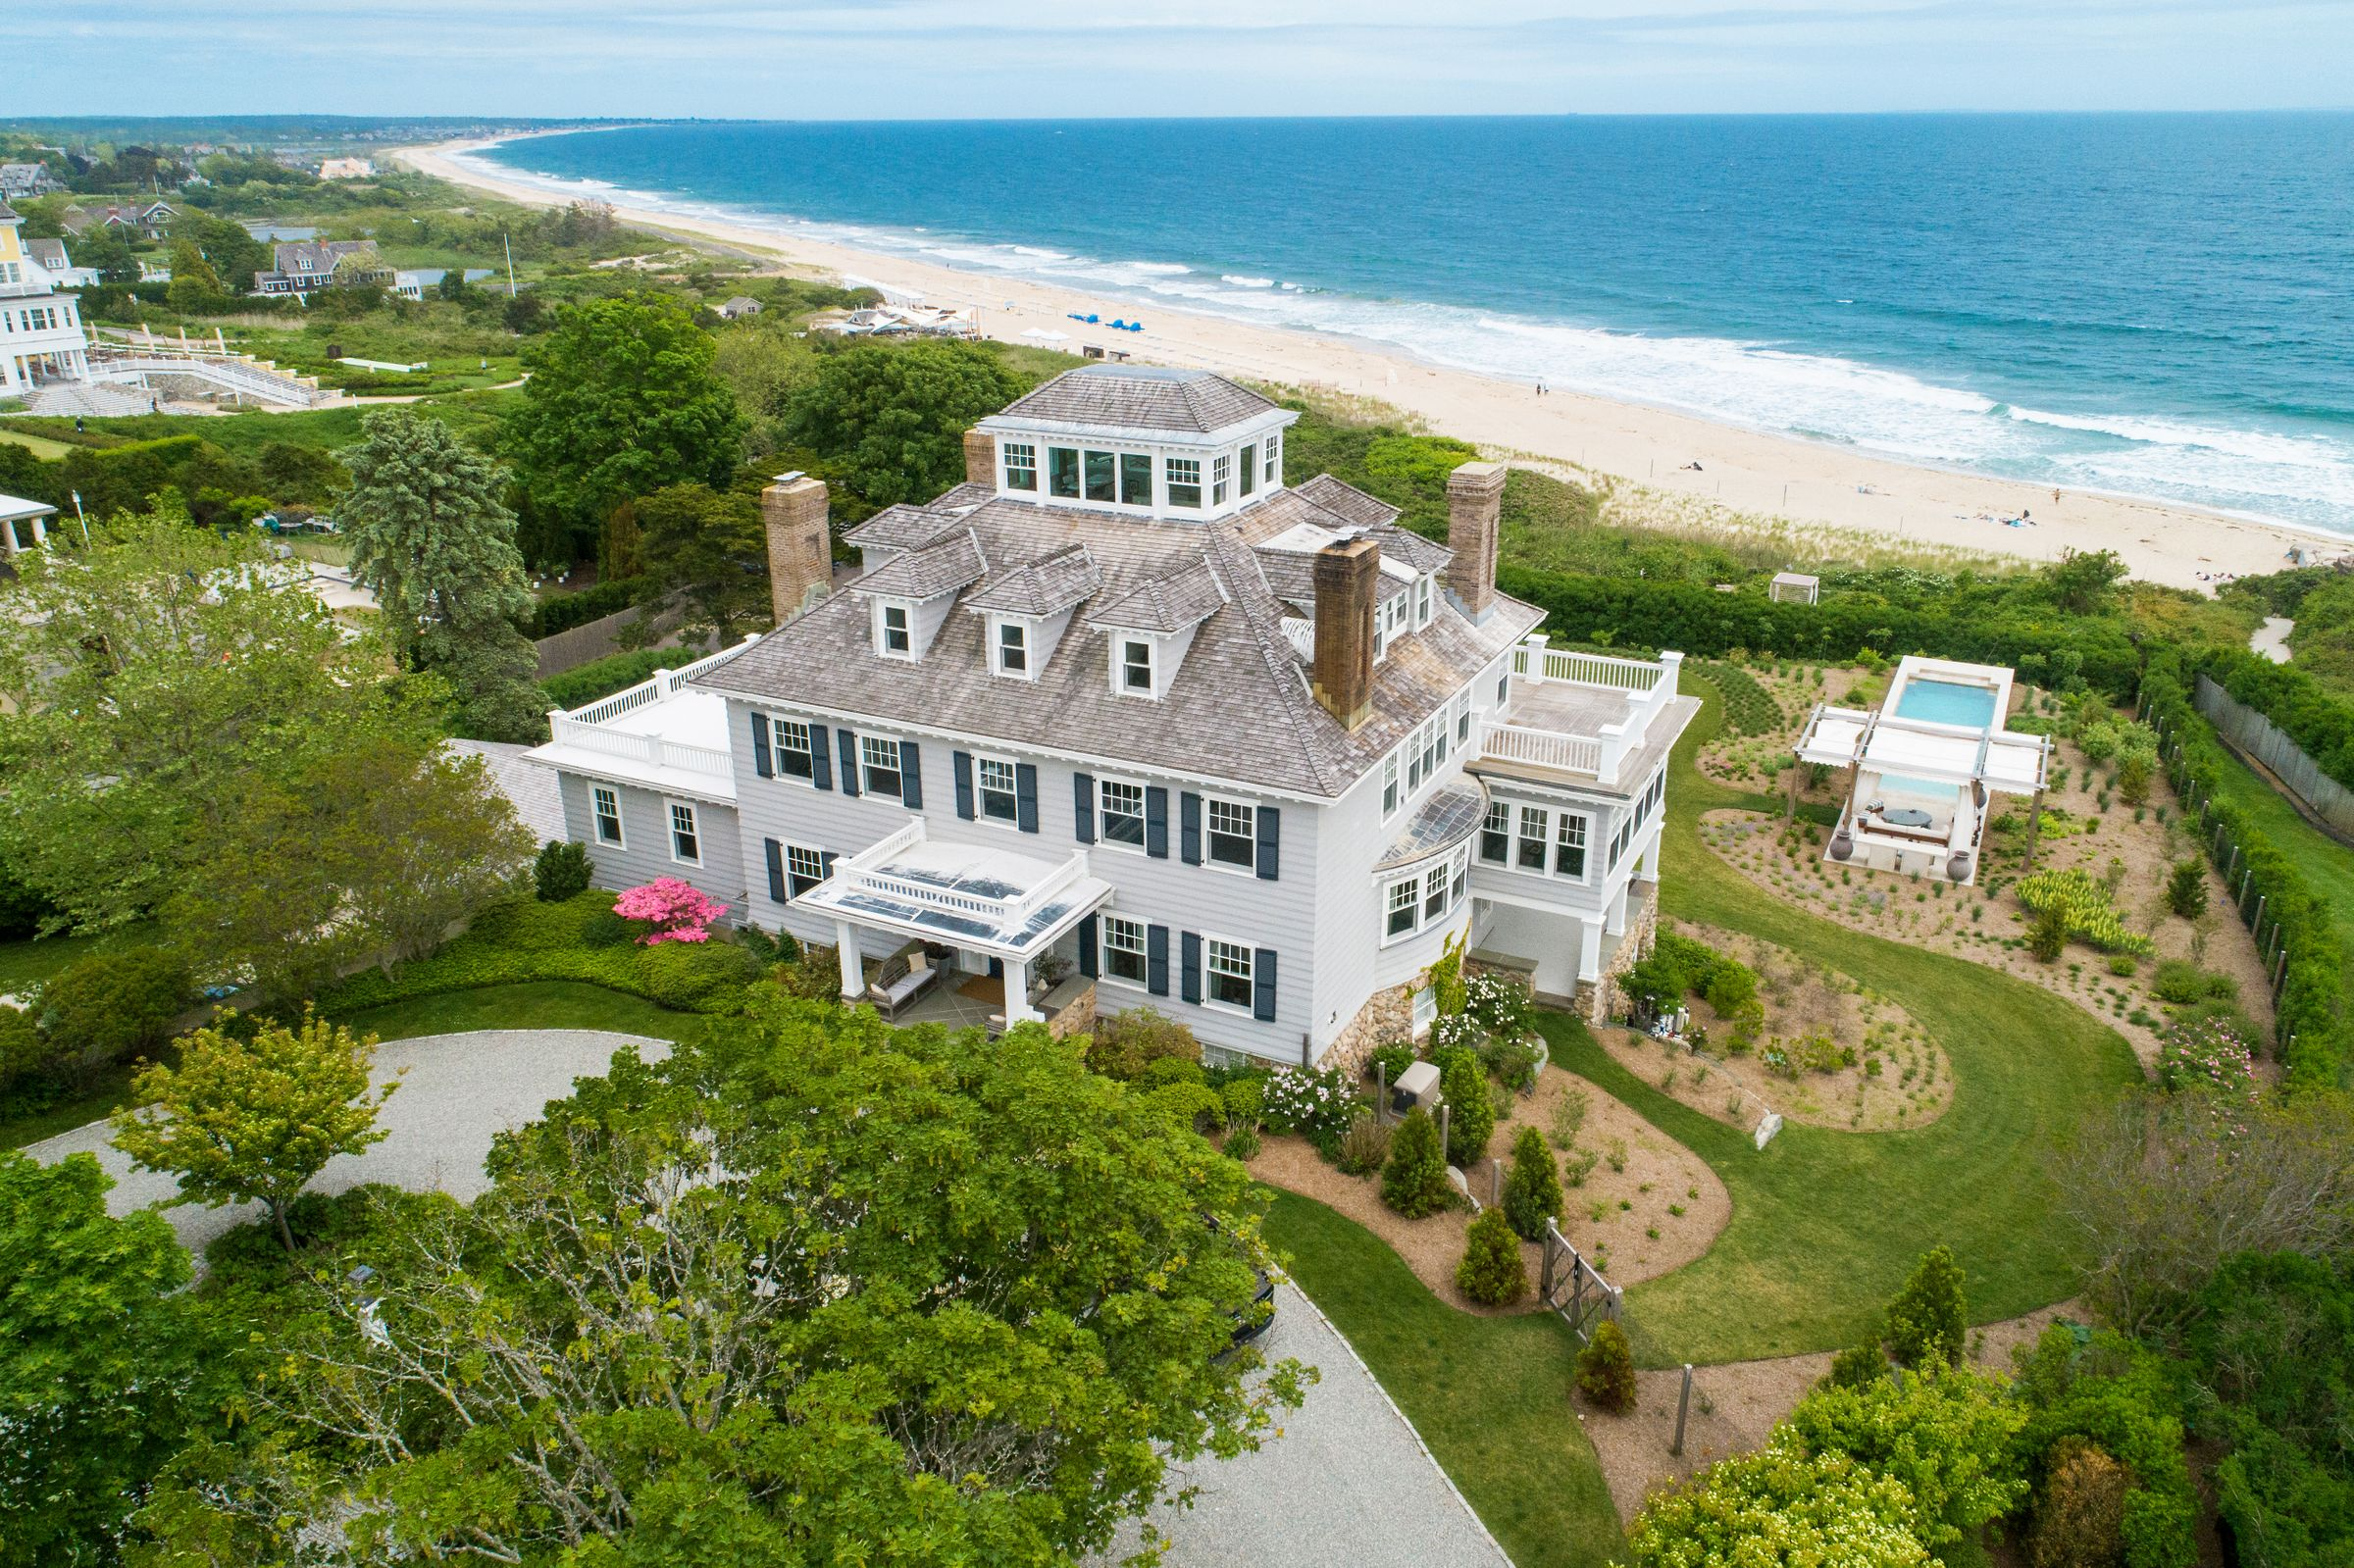 Rhode Island Mansion Near Taylor Swift's Home Sells For $17.6 Million